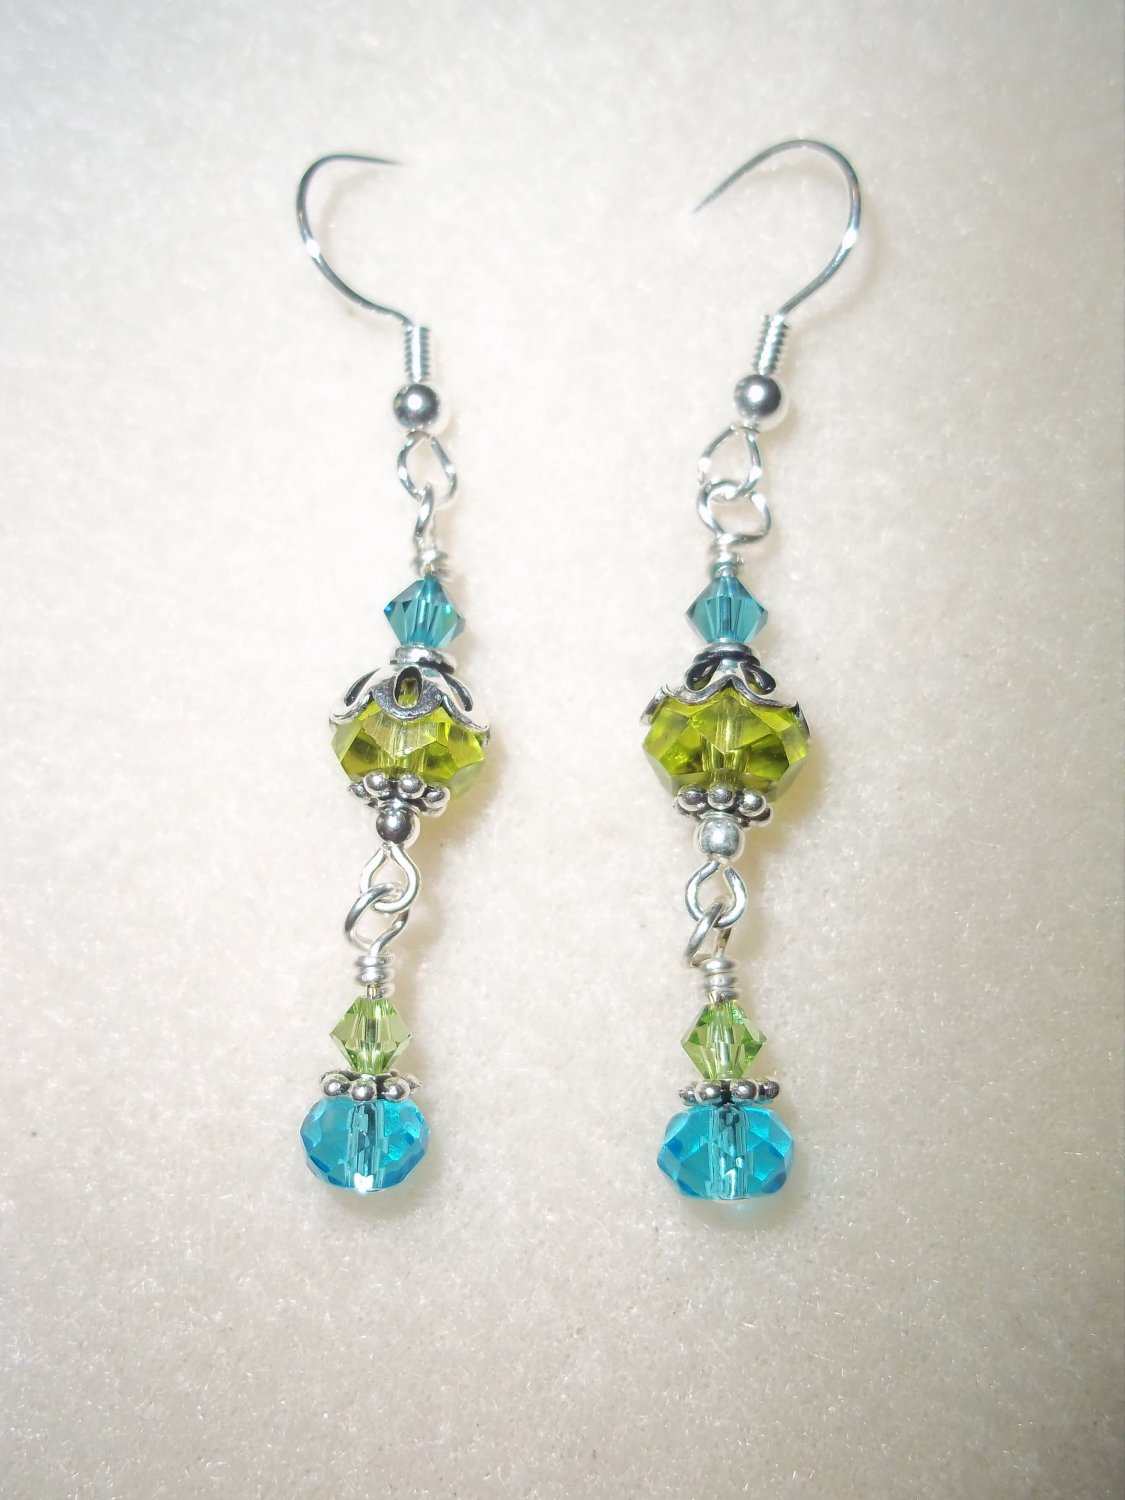 Handmade Wire-Wrapped Green & Blue Earrings